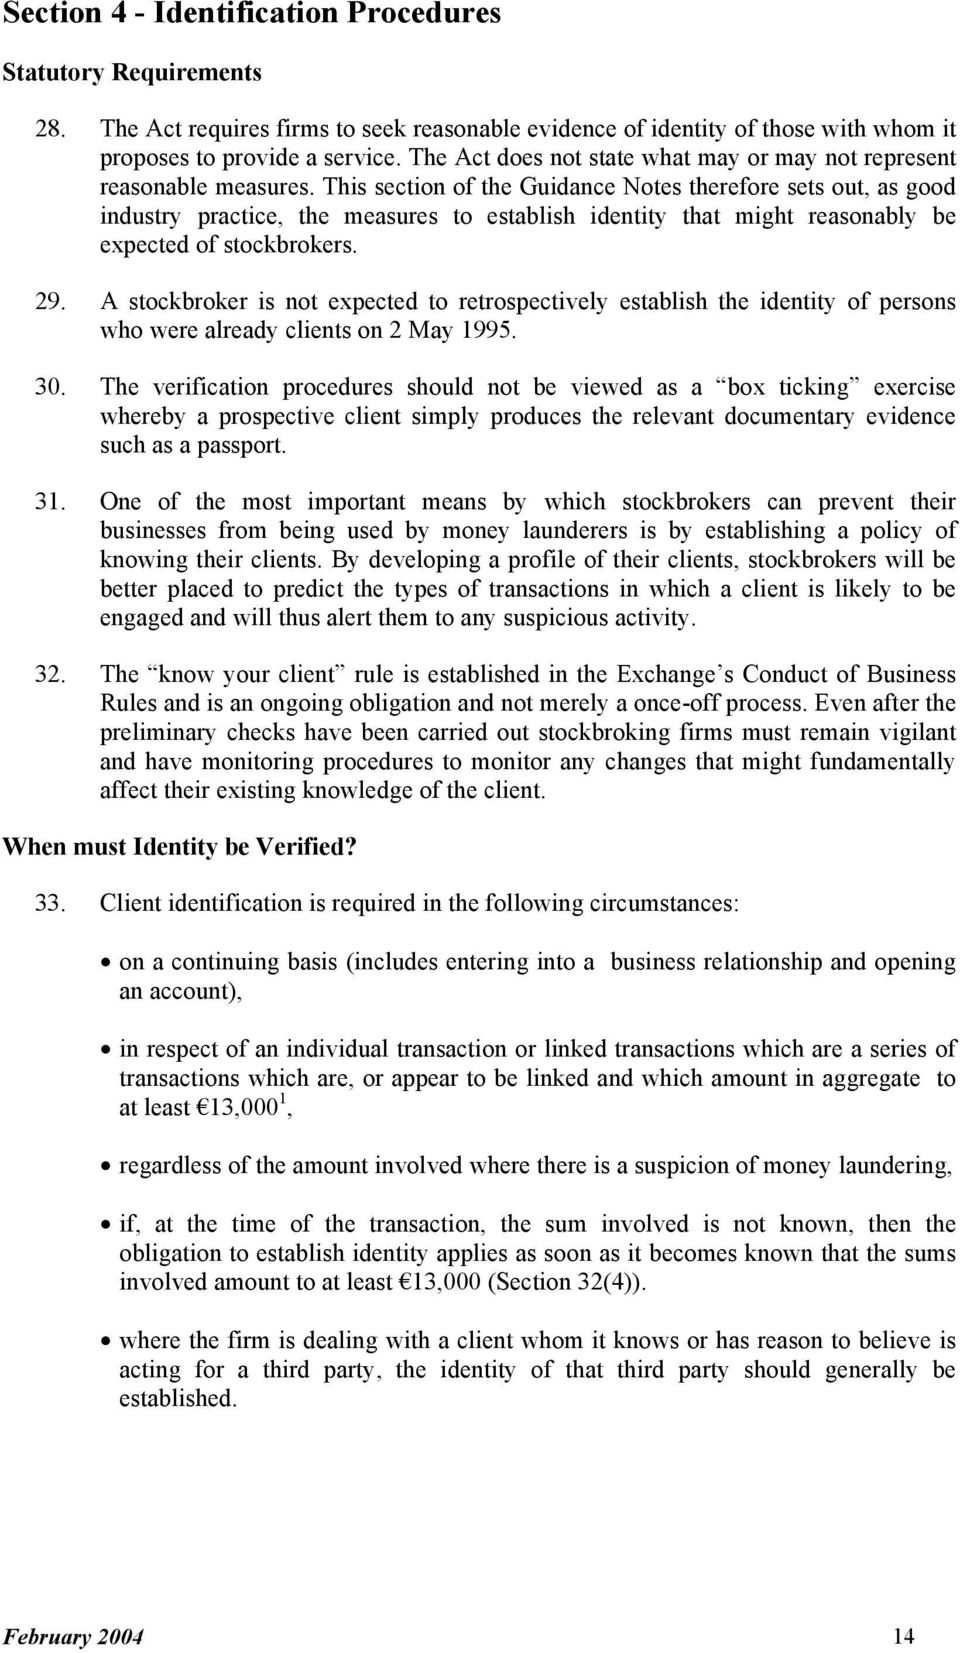 This section of the Guidance Notes therefore sets out, as good industry practice, the measures to establish identity that might reasonably be expected of stockbrokers. 29.